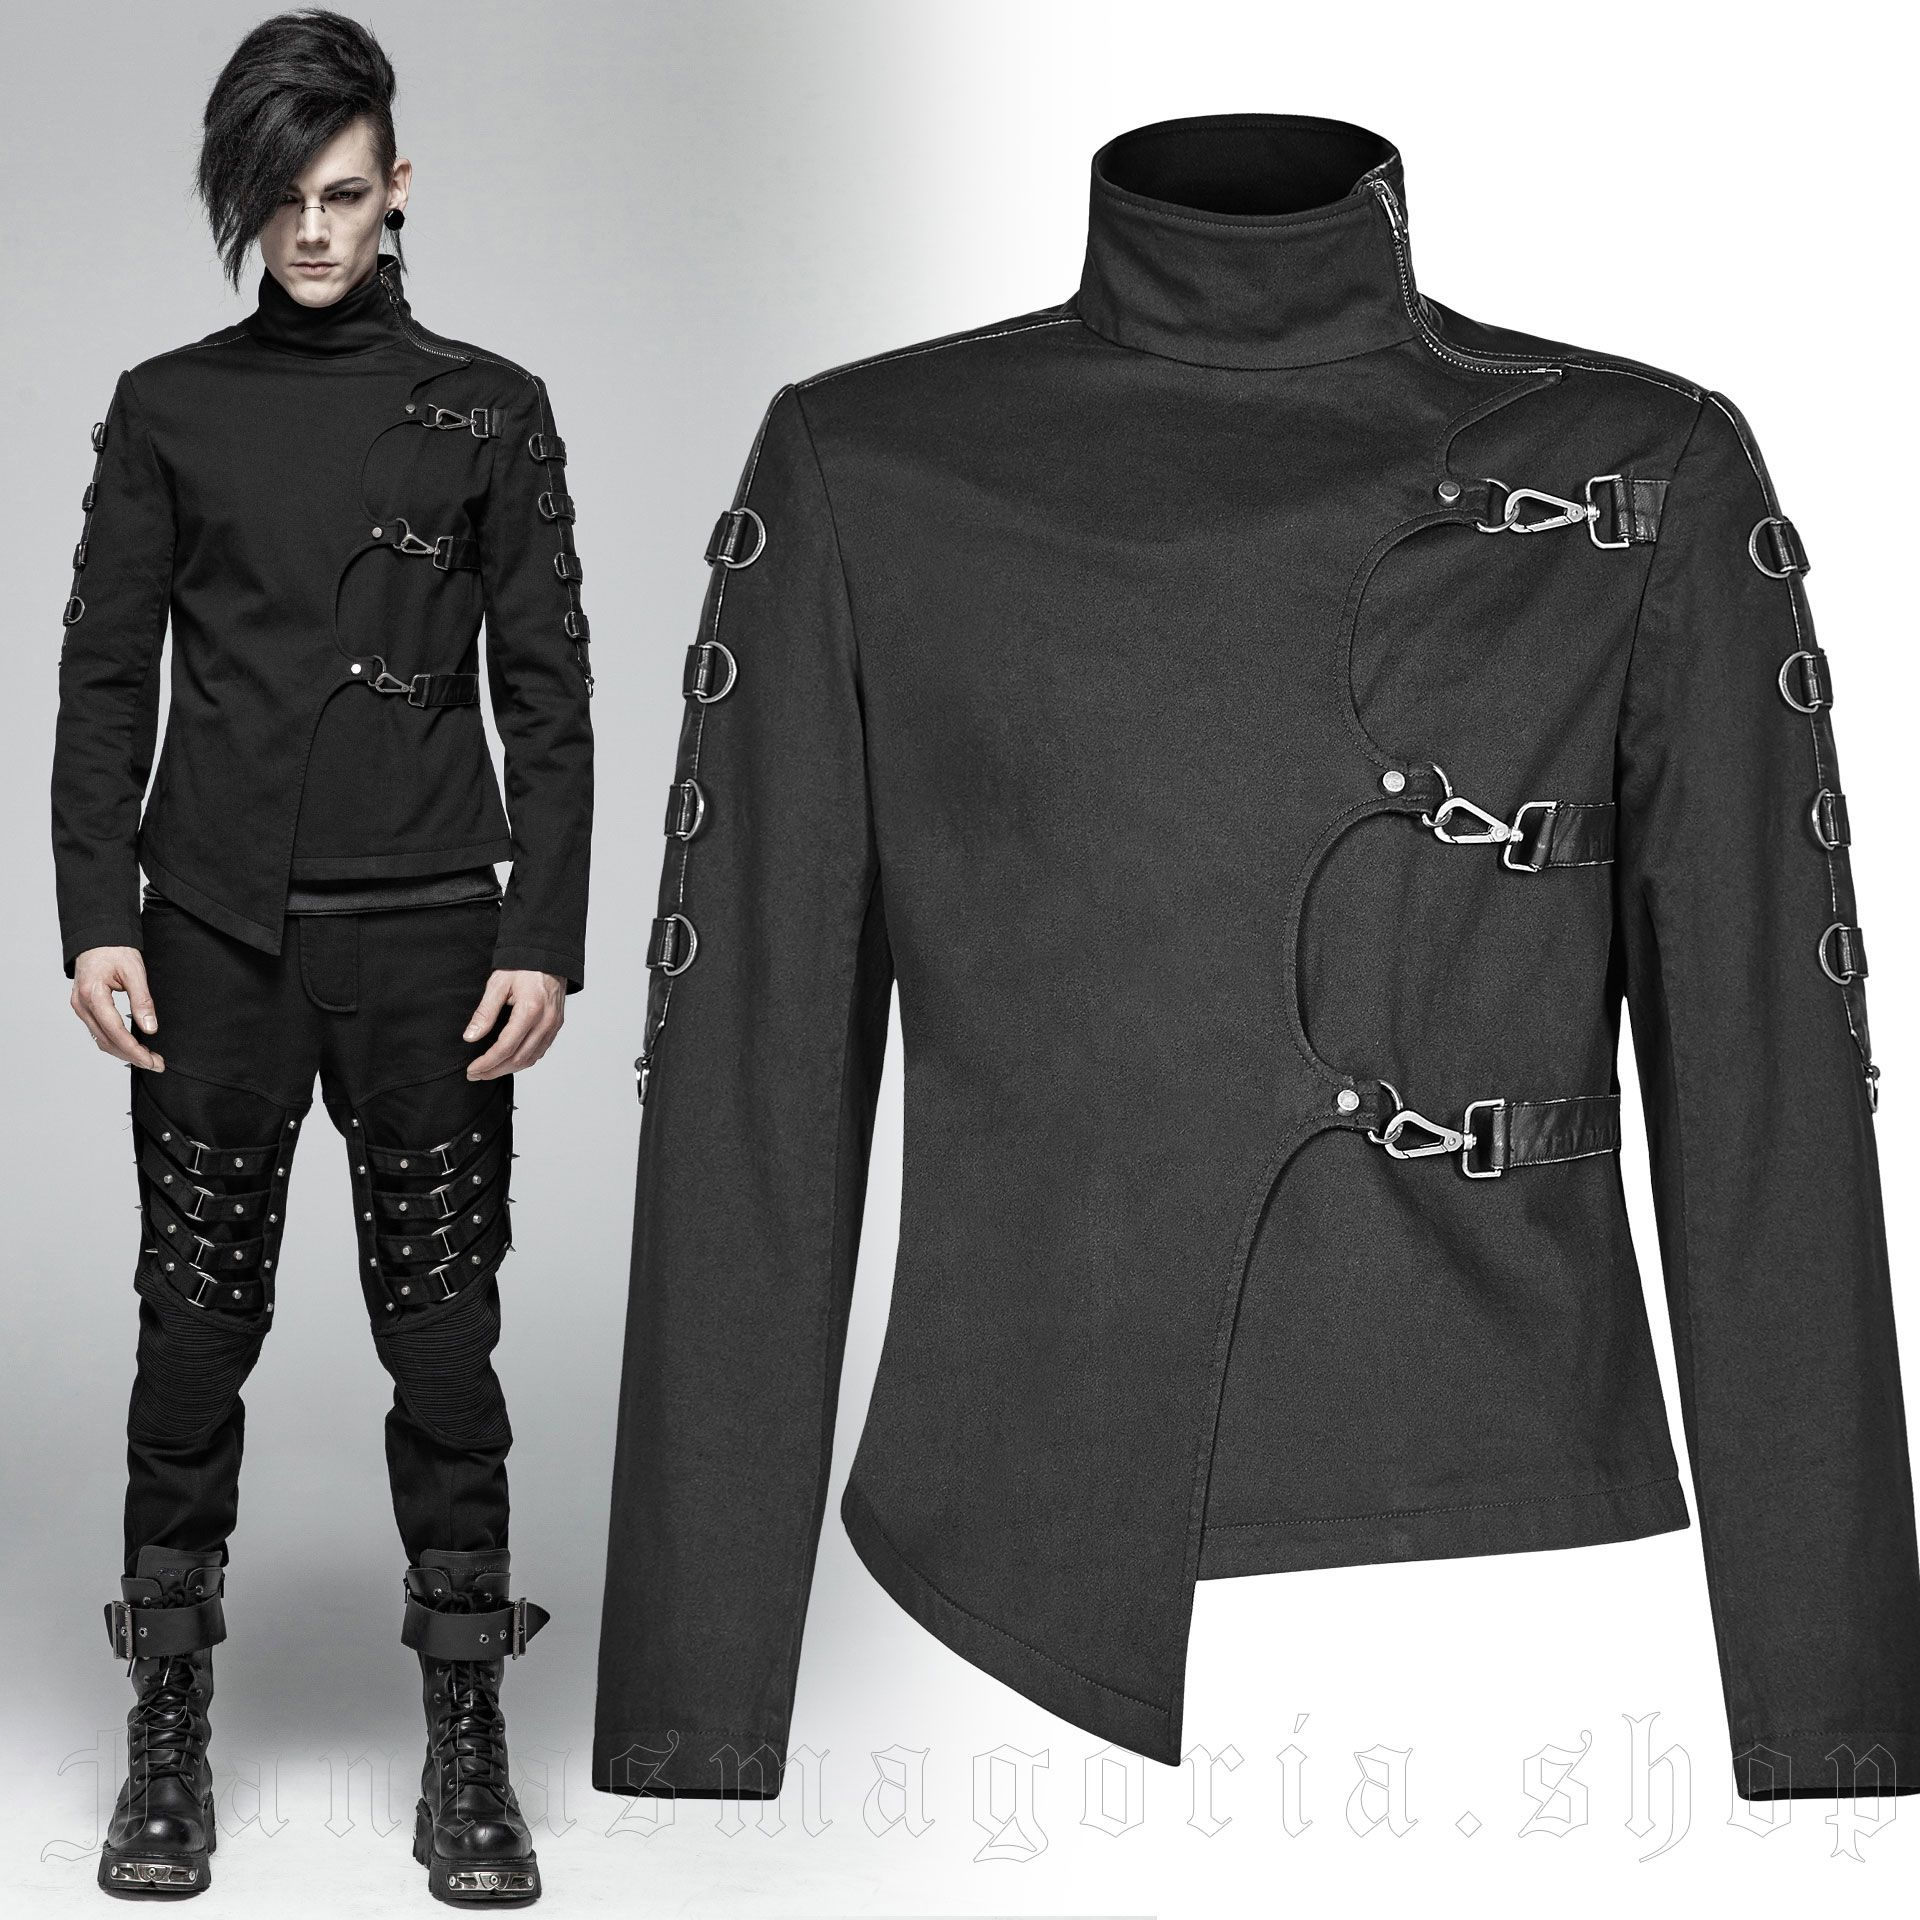 men's Asylum Jacket by PUNK RAVE brand, code: WY-1017